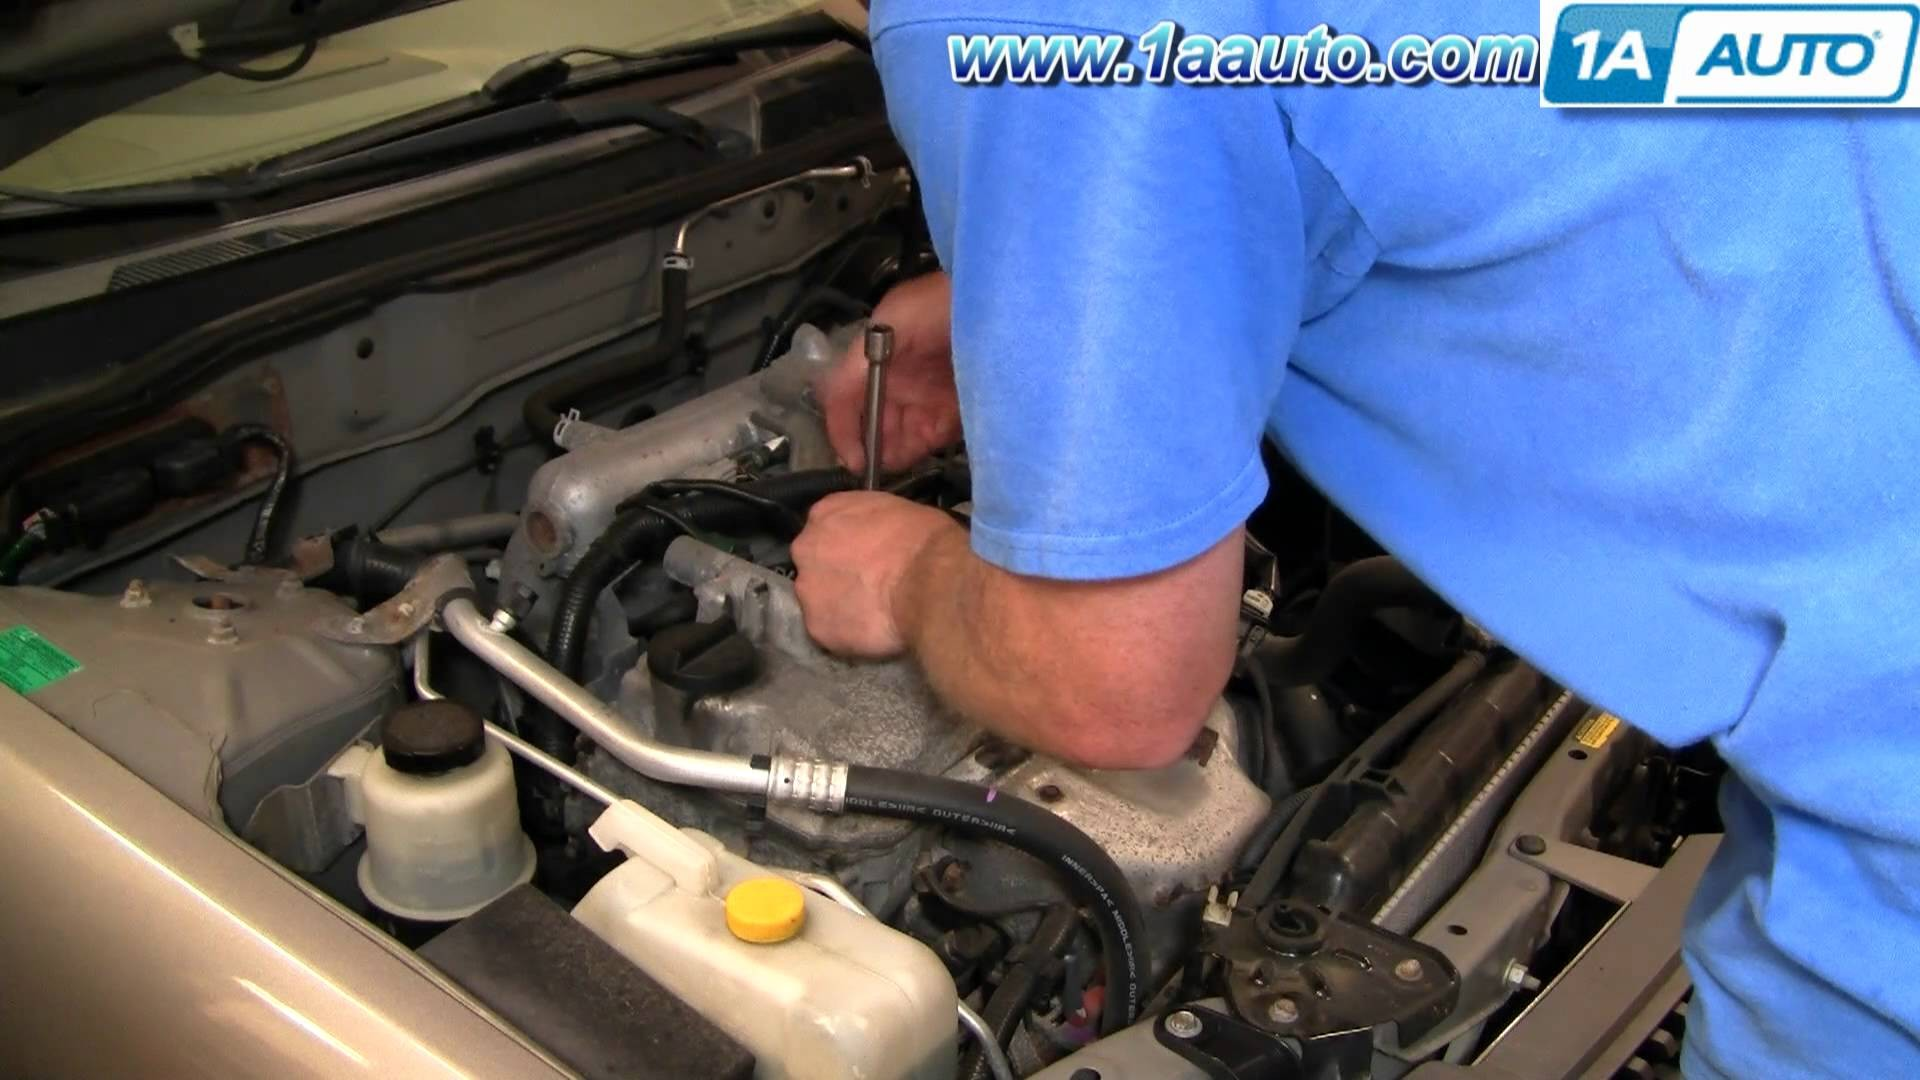 1994 Nissan Sentra Engine Diagram Likewise 2001 Pathfinder How To Install Replace Spark Plugs 04 06 1aauto